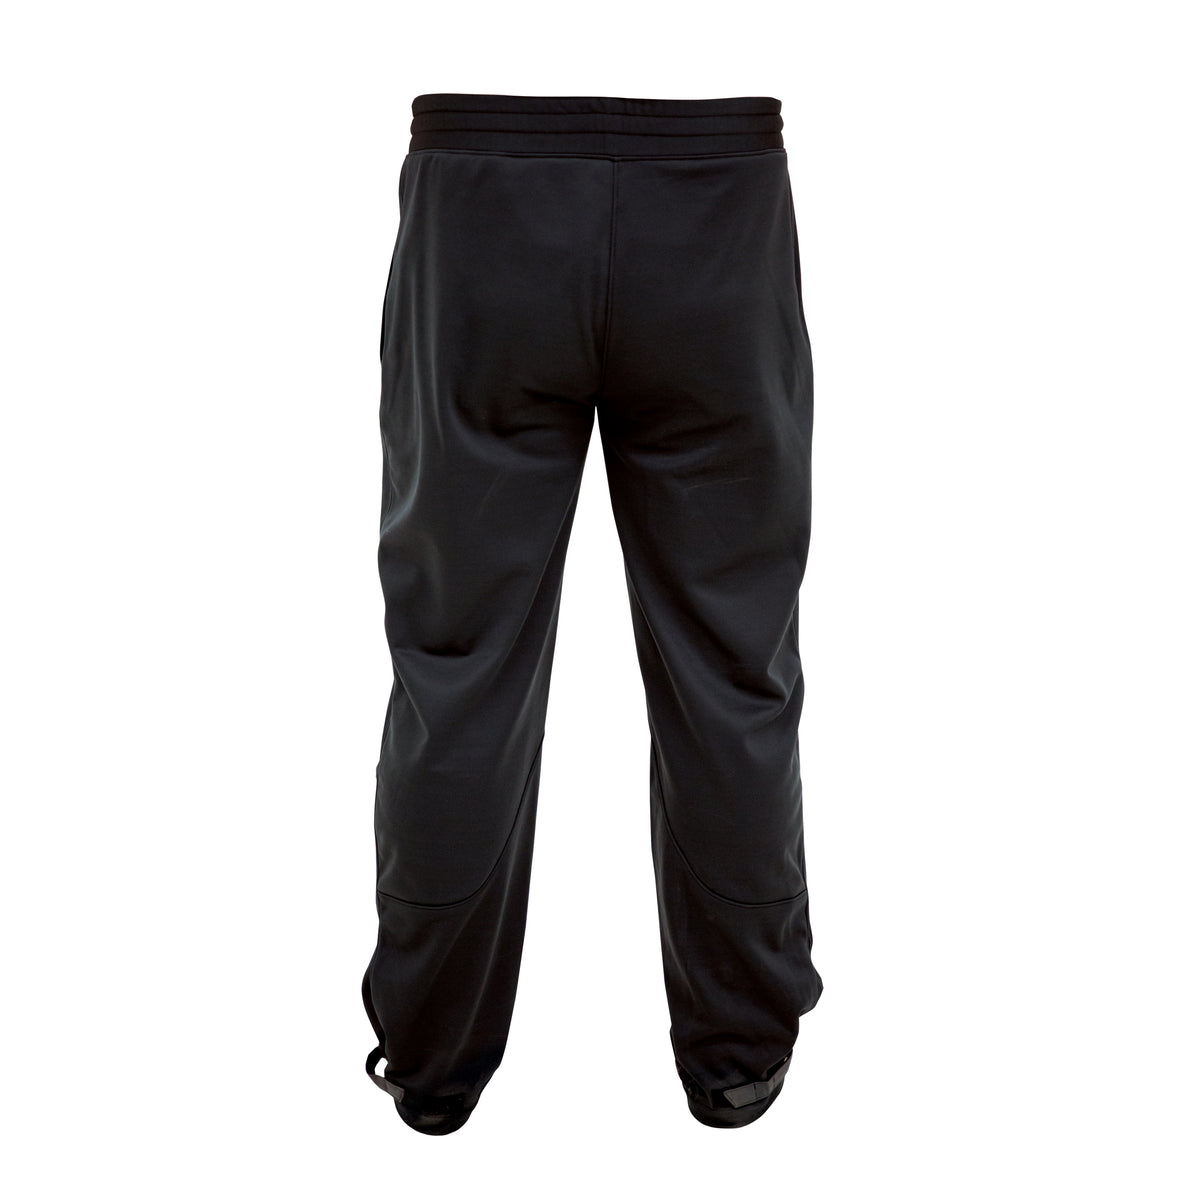 Men's Shanty Boss Sweatpants